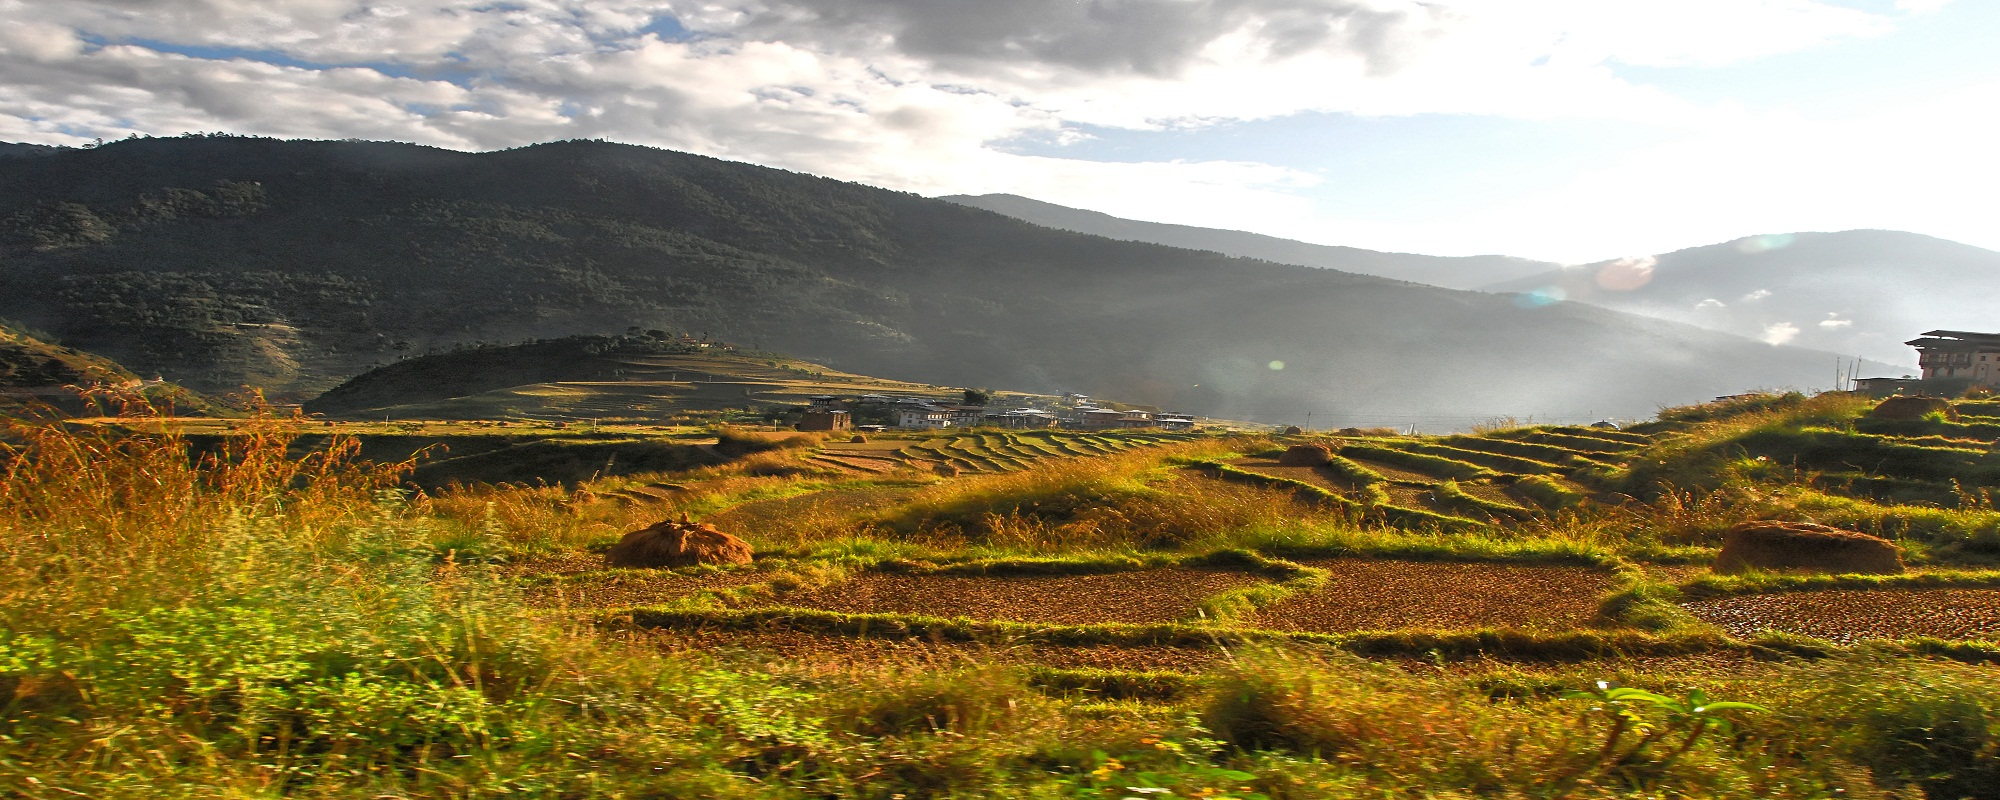 Central Bhutan Tour – 7 nights / 8 days